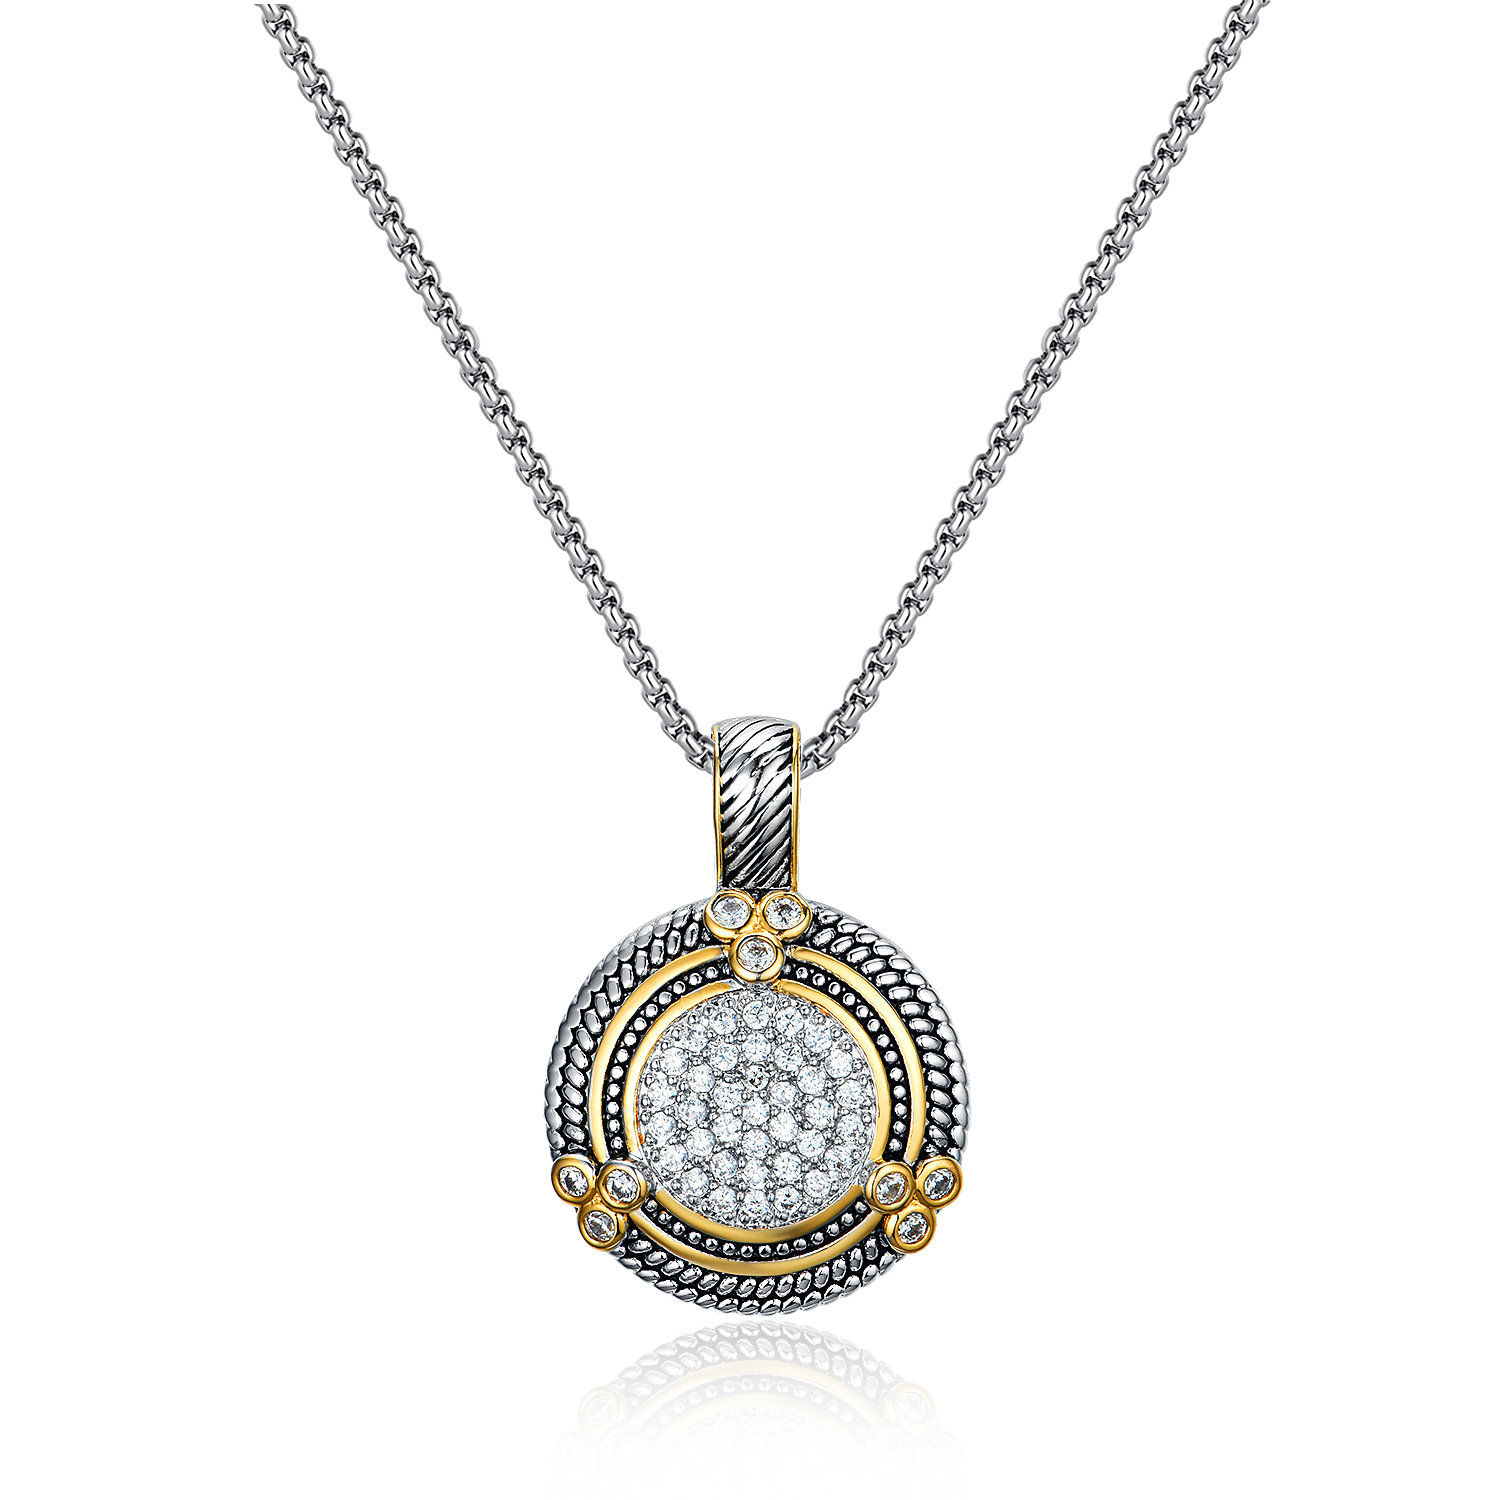 ST2765P-Designer inspired Cable texture Two-tone Round Pendant with White CZ in center in brass suspends a 18inch 2mm box chain with  2